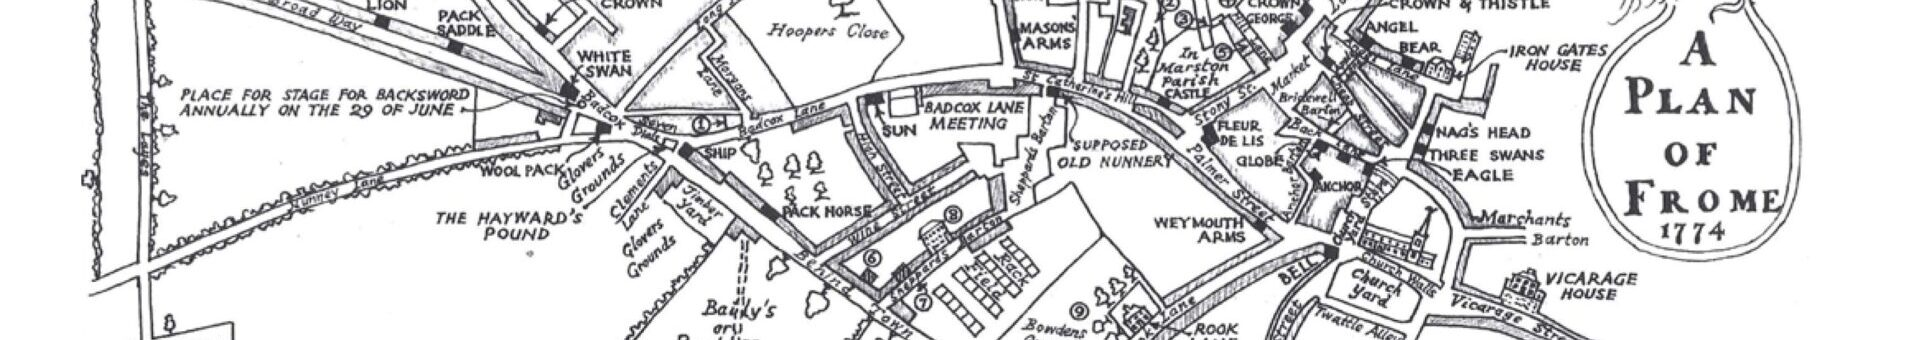 Old hand drawn map of Frome